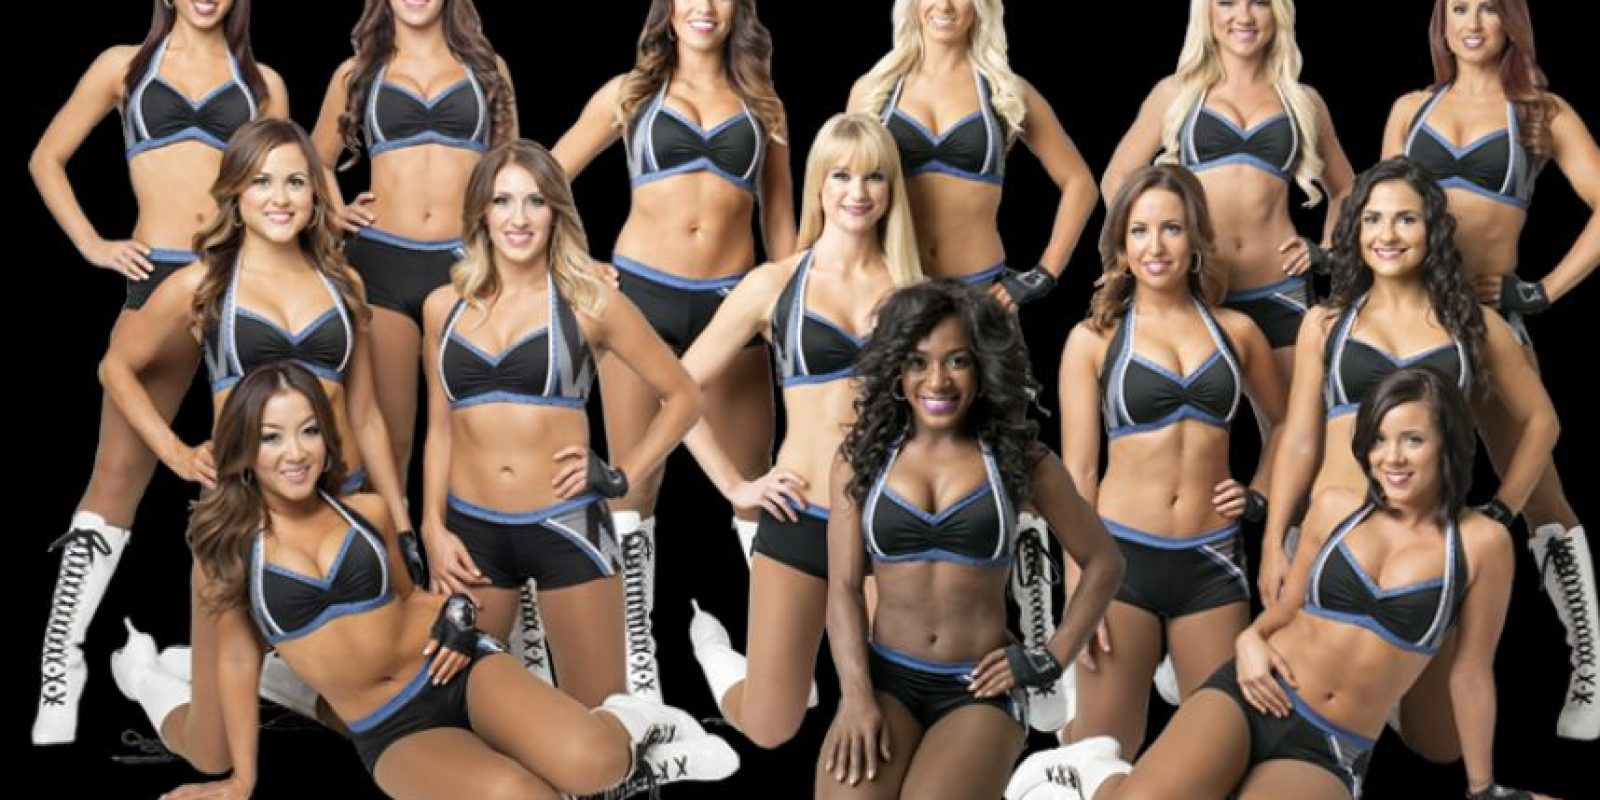 Timberwolves Girls Foto: NBA